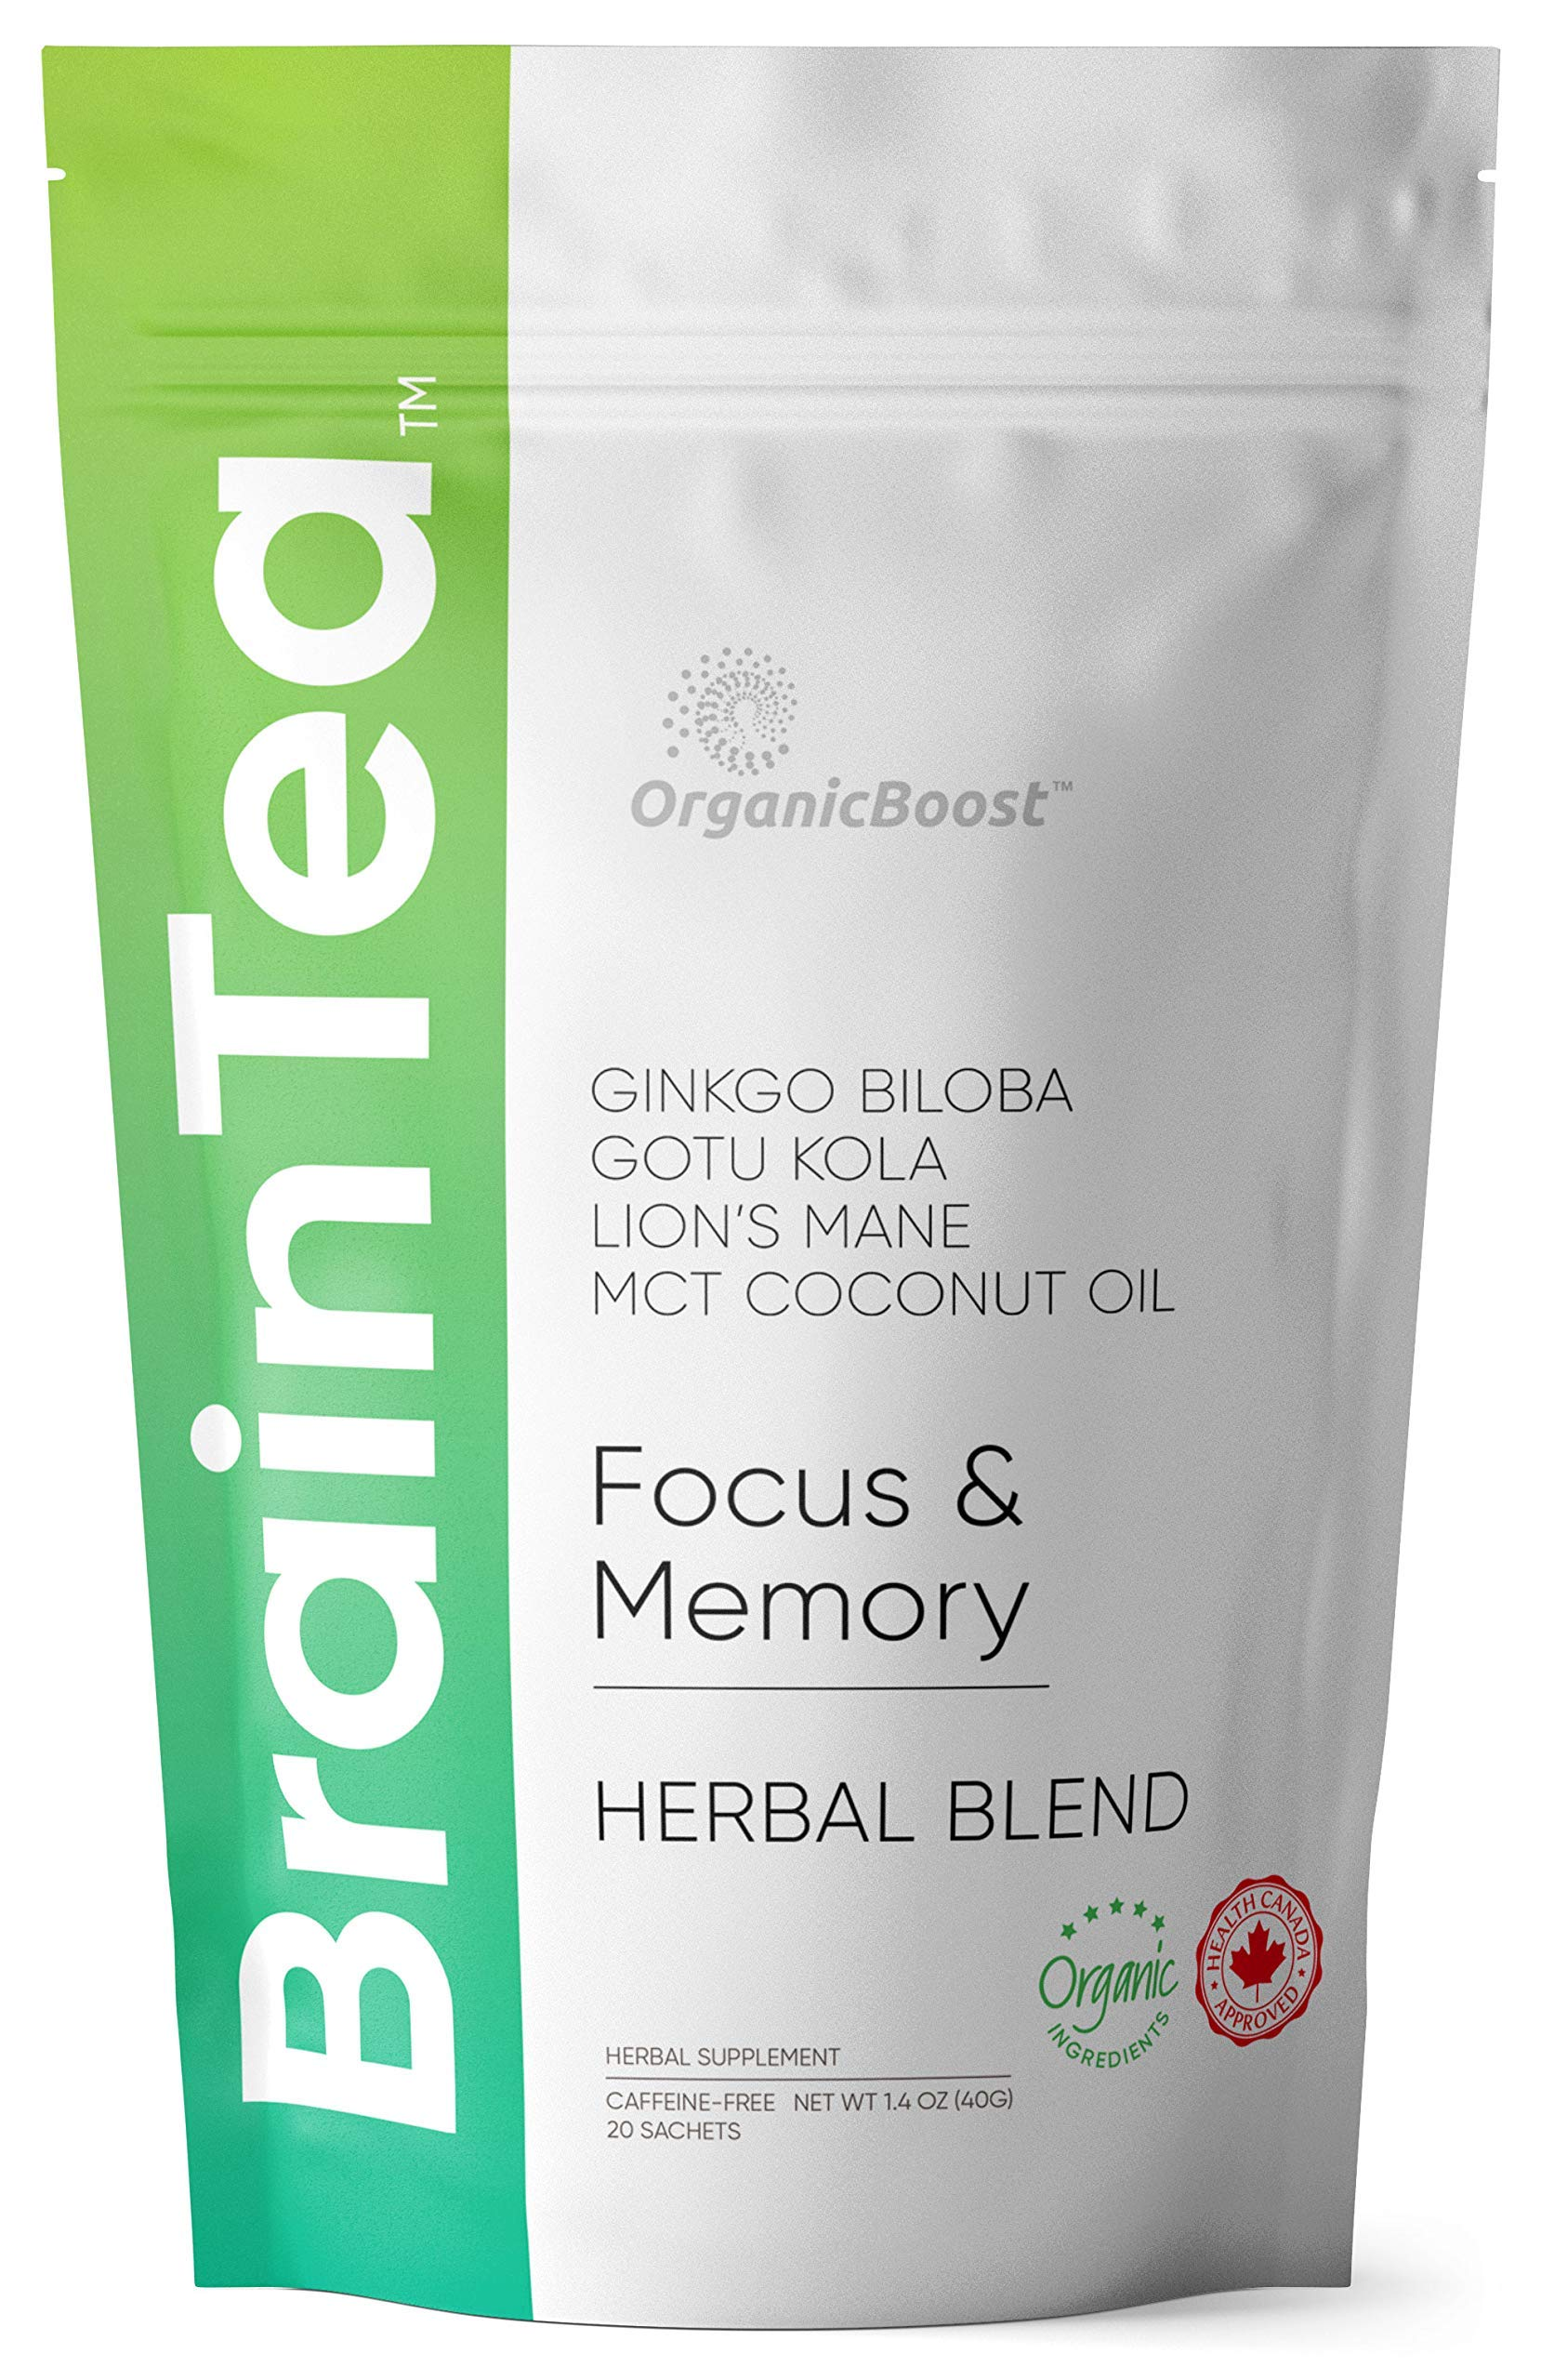 Brain Tea - Organic: Gotu Kola, Ginkgo Biloba, Lion's Mane Mushroom, MCT. Brain Booster for Better Memory & Focus, Nootropic Tea